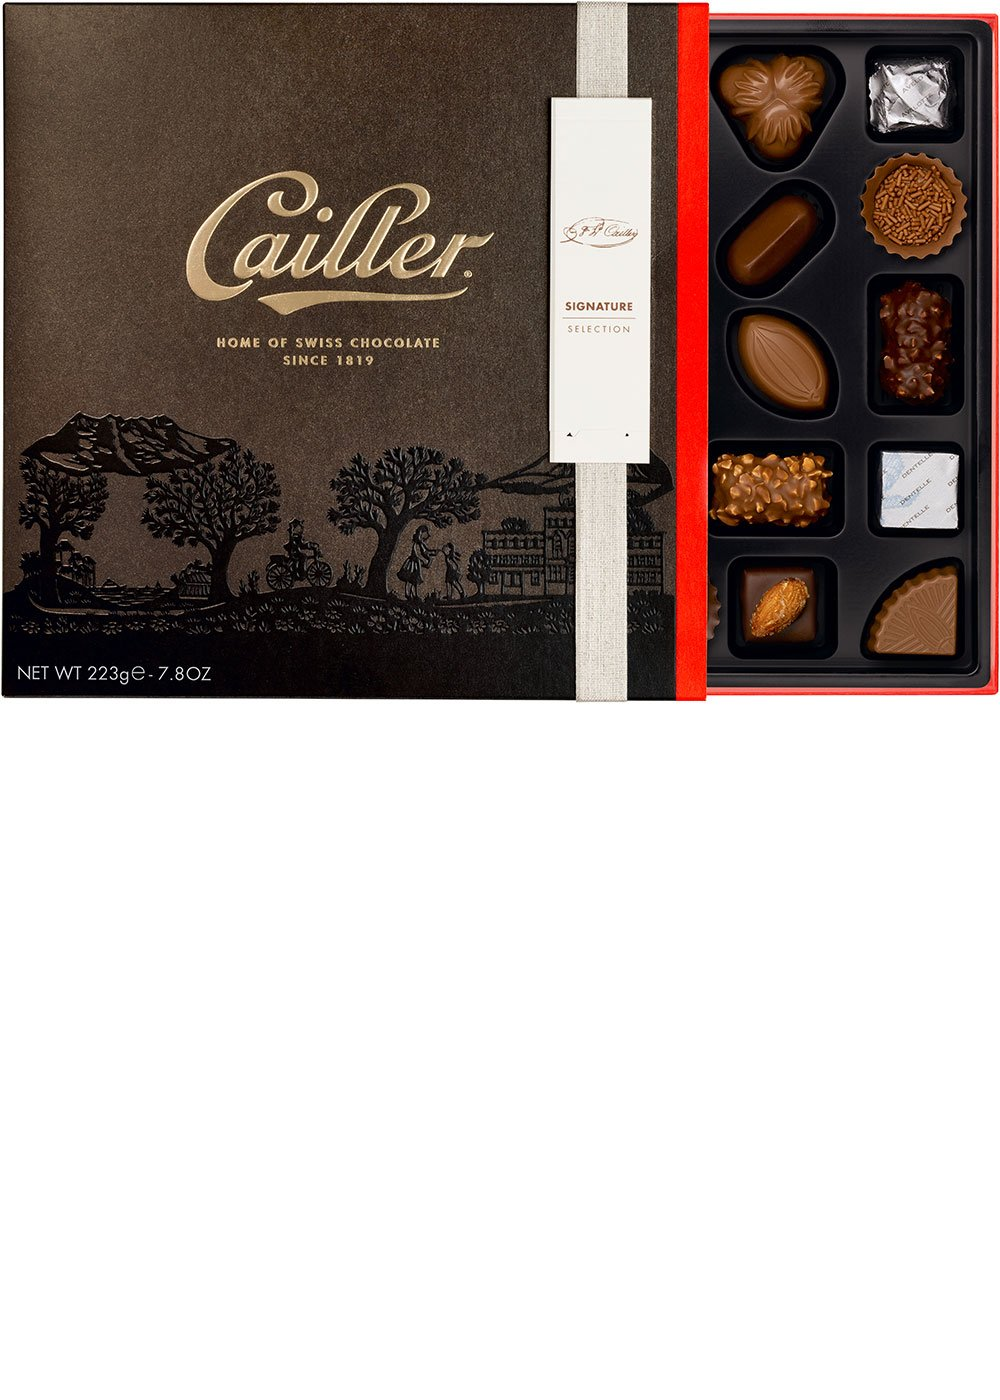 Amazon.com : CAILLER Chocolate Signature Selection, Large Box ...